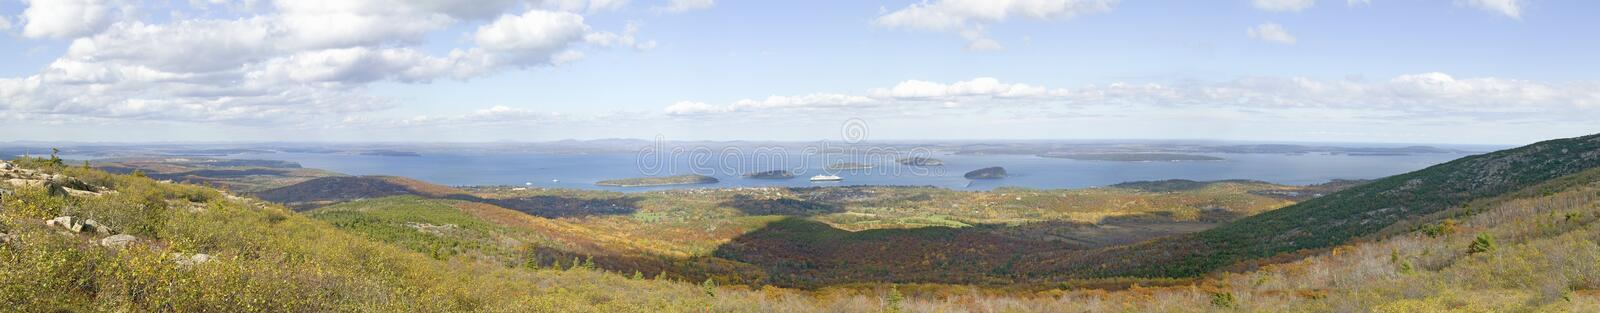 Panoramic autumn view from 1530 foot high Cadillac Mountain with views of the Porcupine Islands, Frenchman Bay and Holland America stock photos